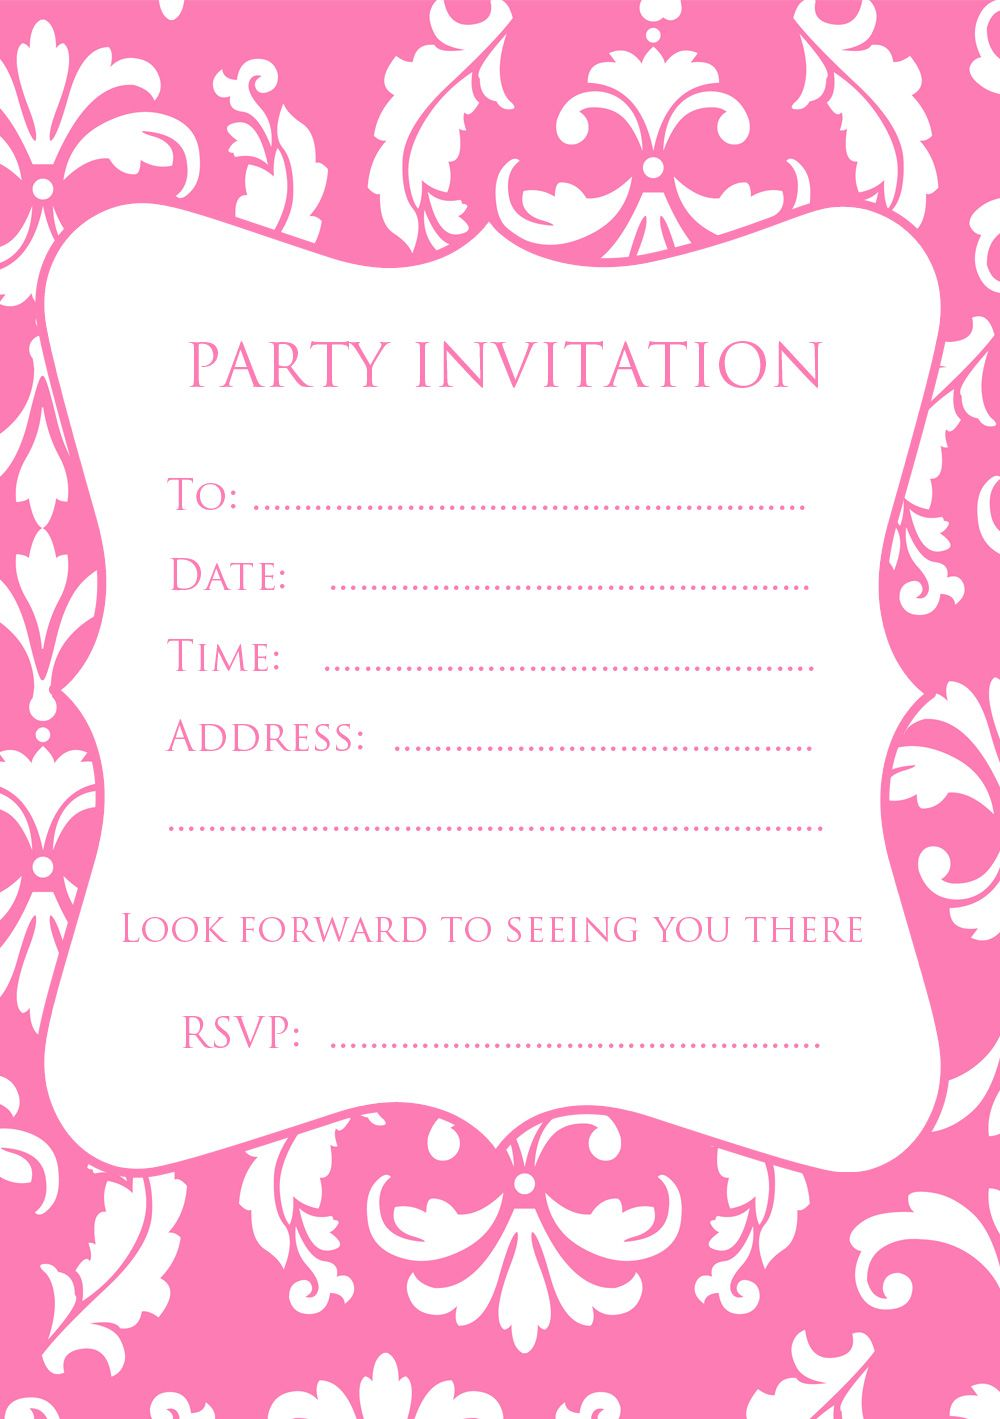 FREE Pink Damask Party Invitation | Invitation filles | Pinterest ...